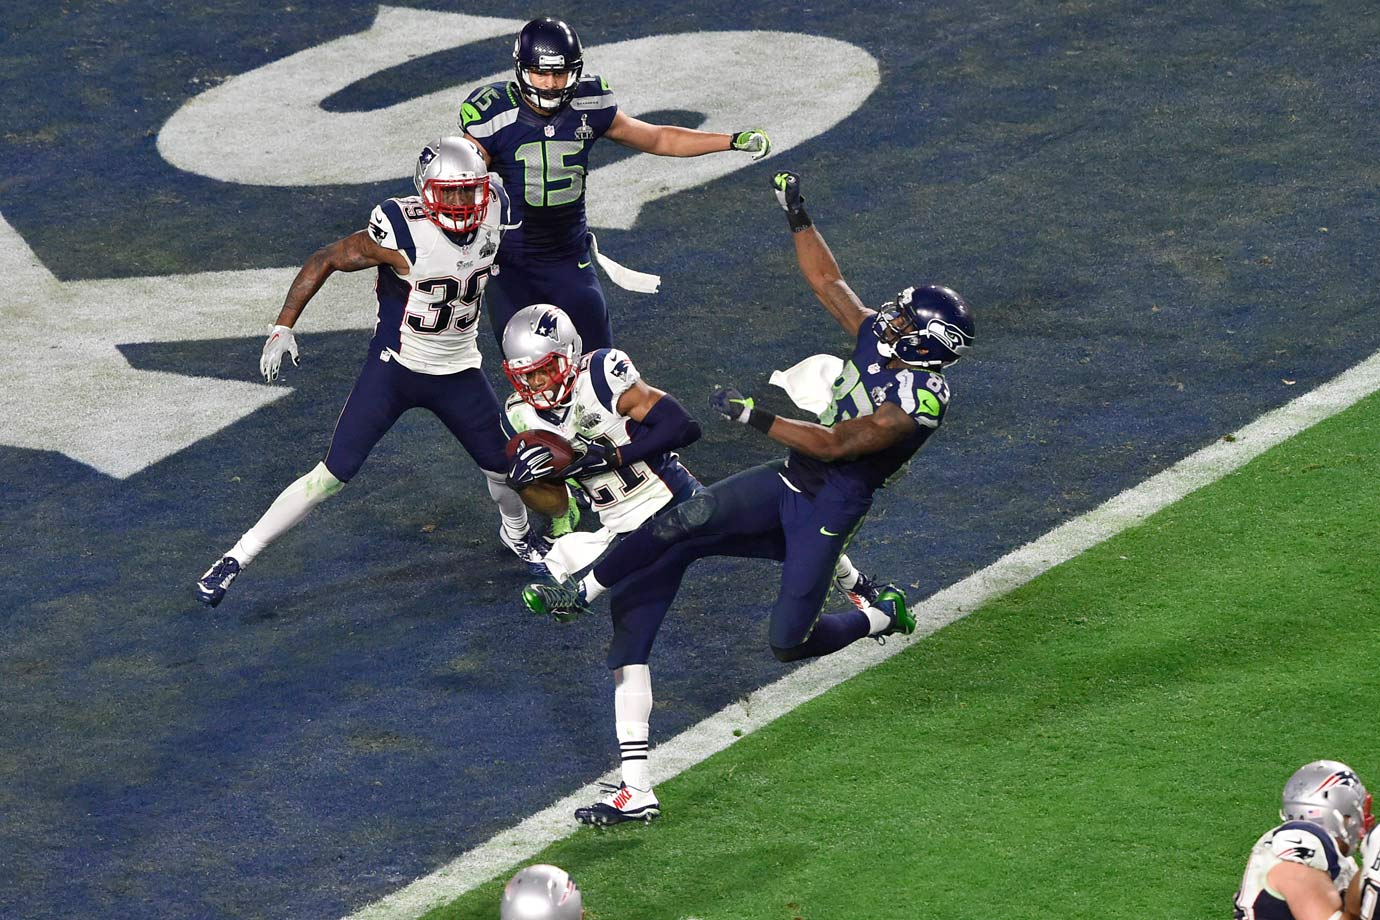 New England Patriots cornerback Malcolm Butler intercepts a pass intended for Seattle Seahawks wide receiver Ricardo Lockette on 2nd and goal with 26 seconds left in the game. Butler took the ball, and the game, away. The Pats won 28-24.